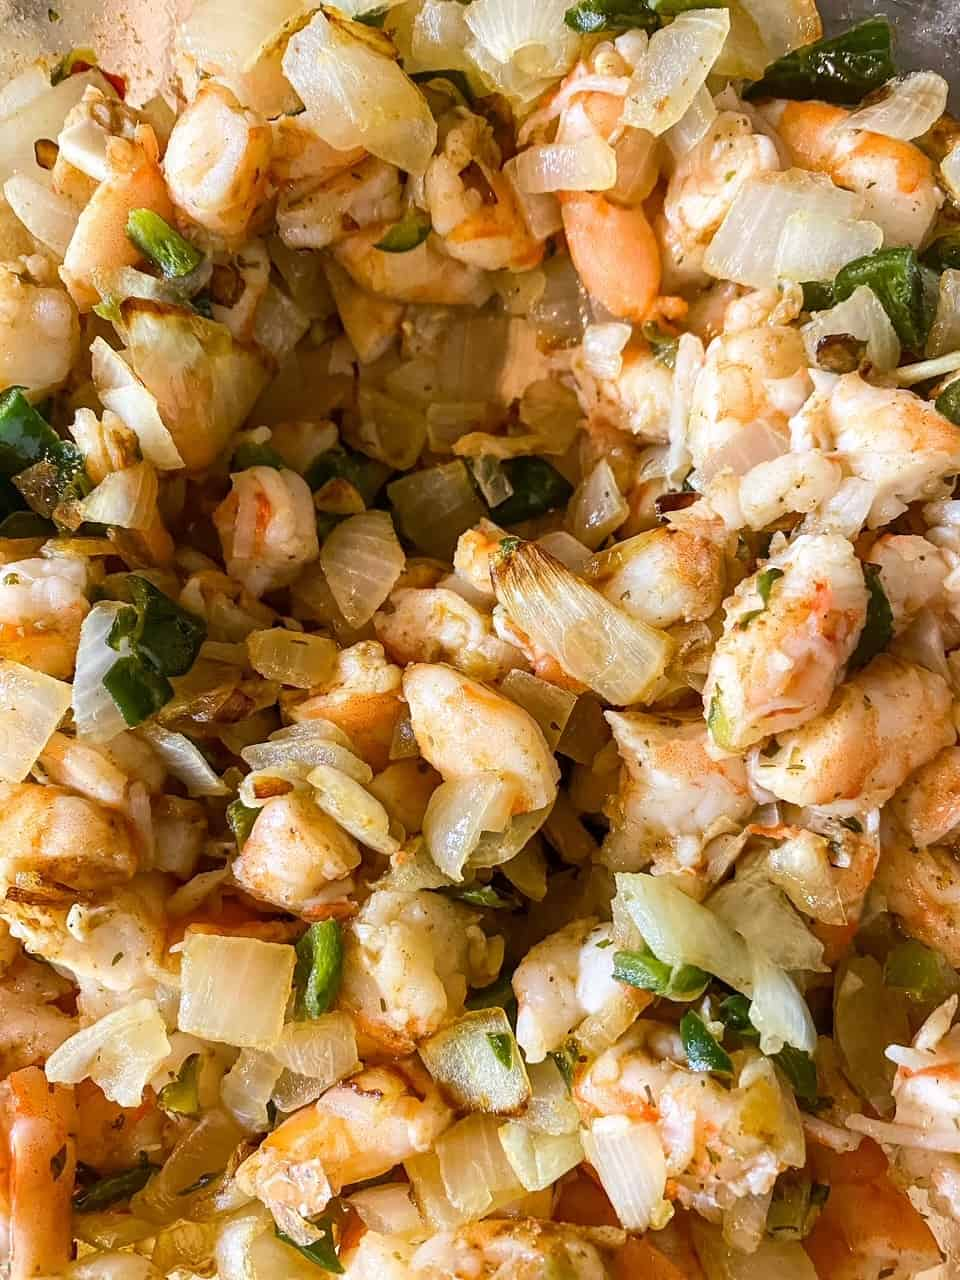 marinated shrimp mixed with onions and peppers